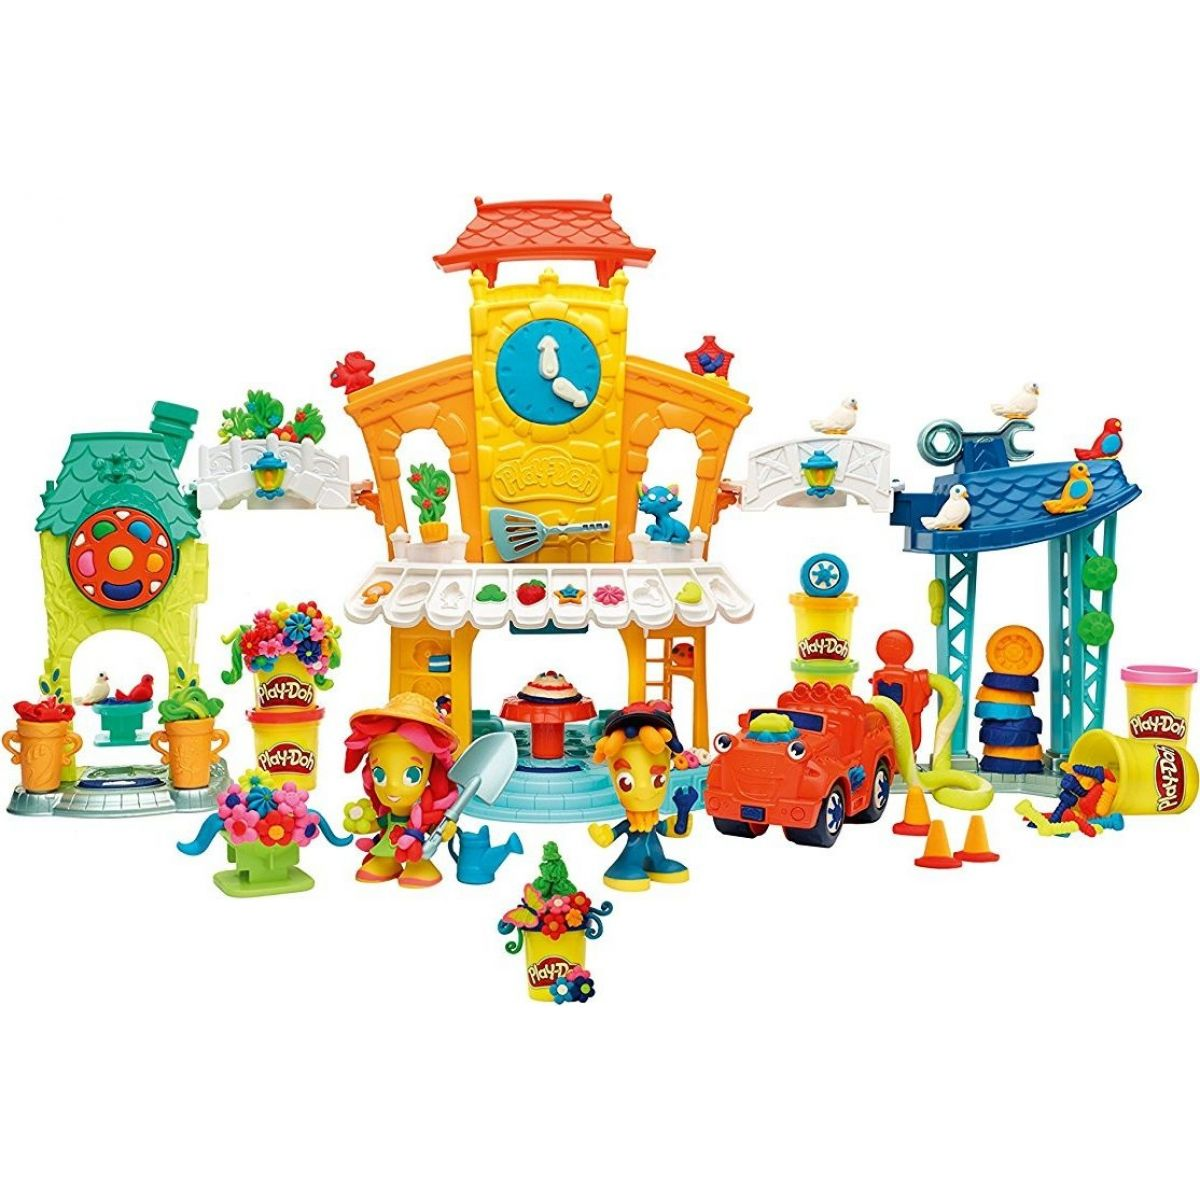 Hasbro Play Doh 3-in-1 Town Center